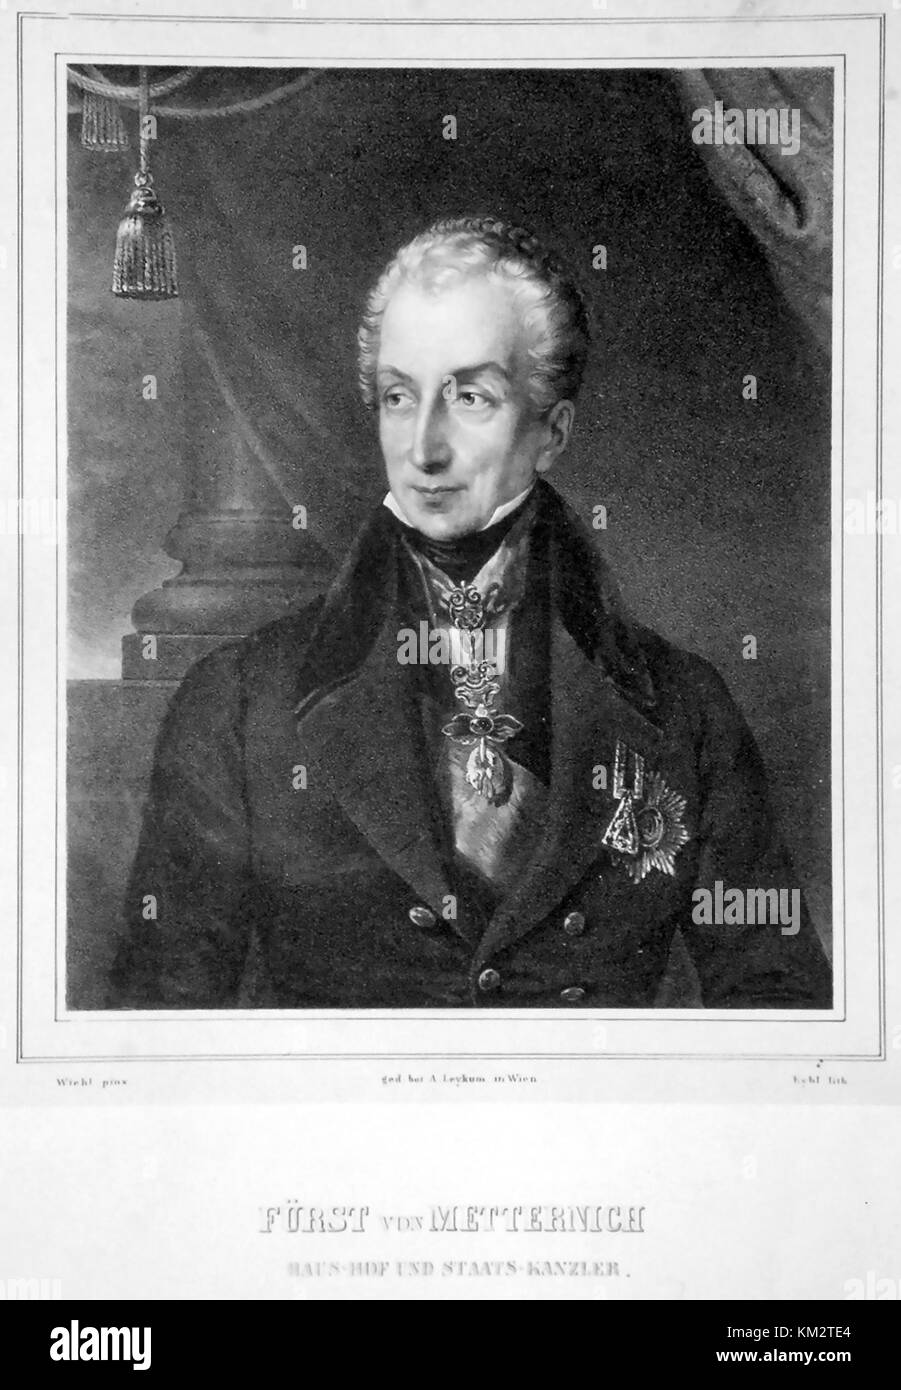 PRINCE KLEMENS von METTERNICH (1773-1859) German diplomat and statesman - Stock Image